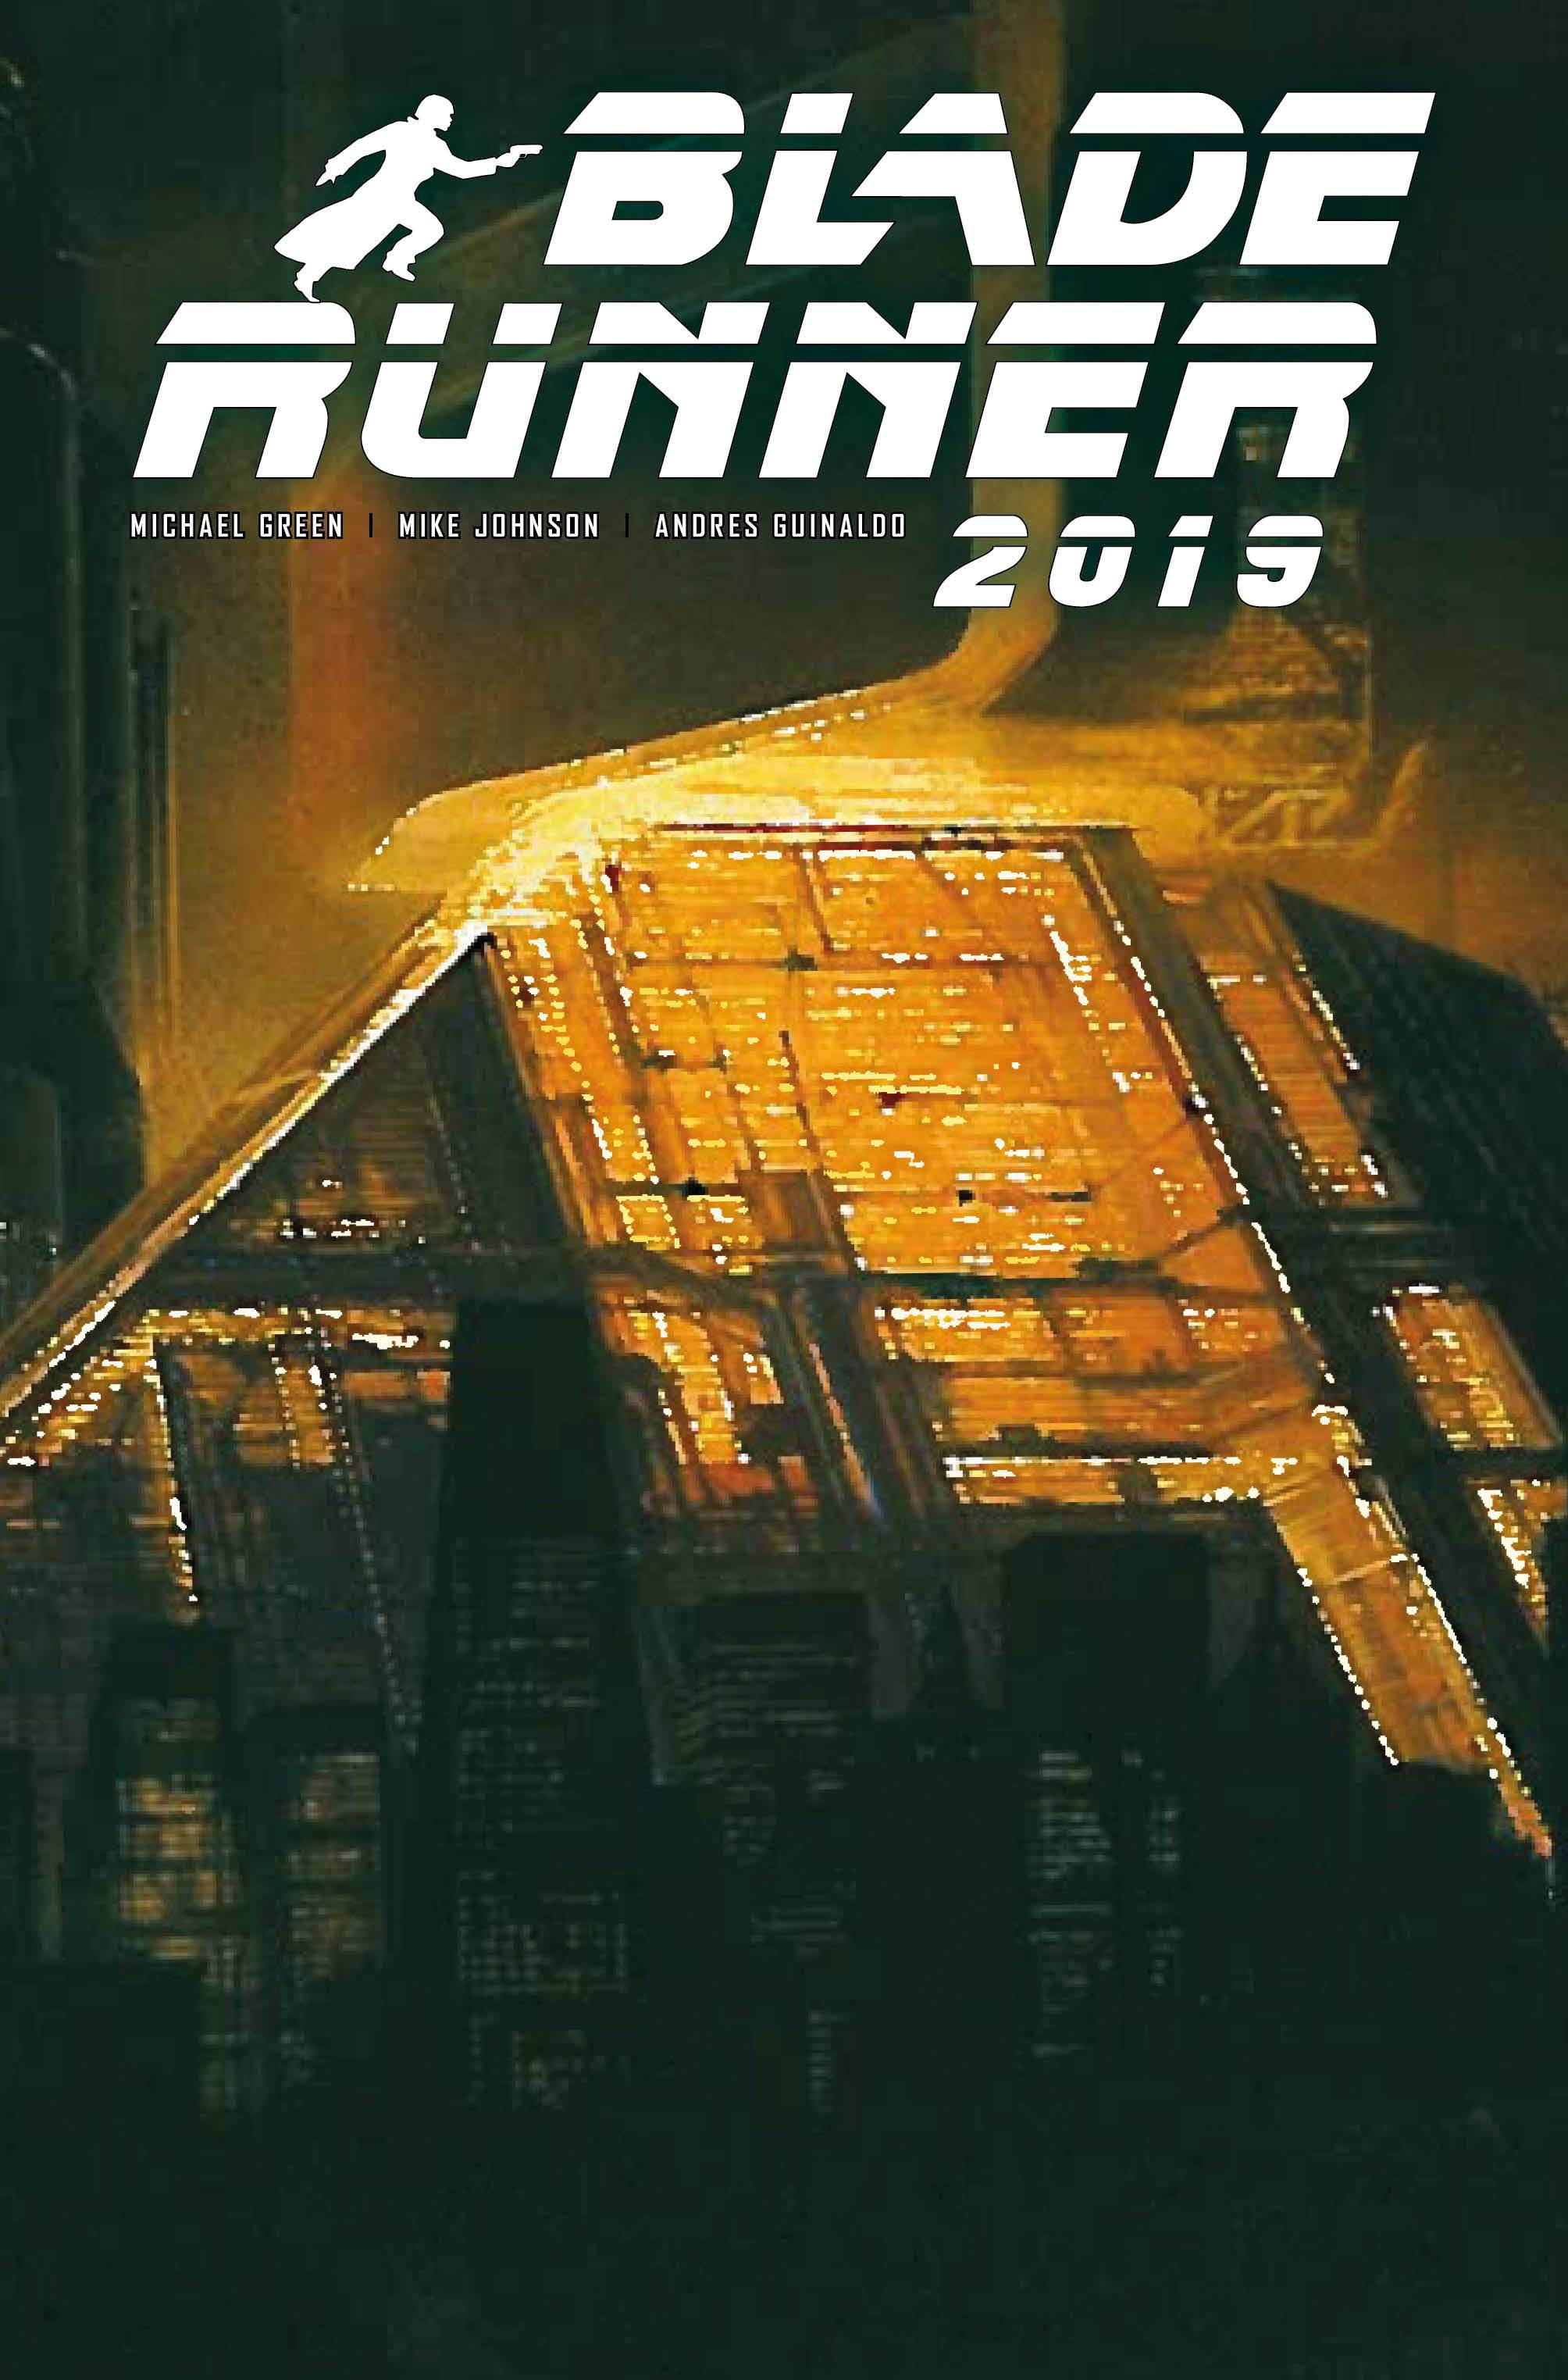 BLADE RUNNER 2019 #12 CVR B MEAD (MR)